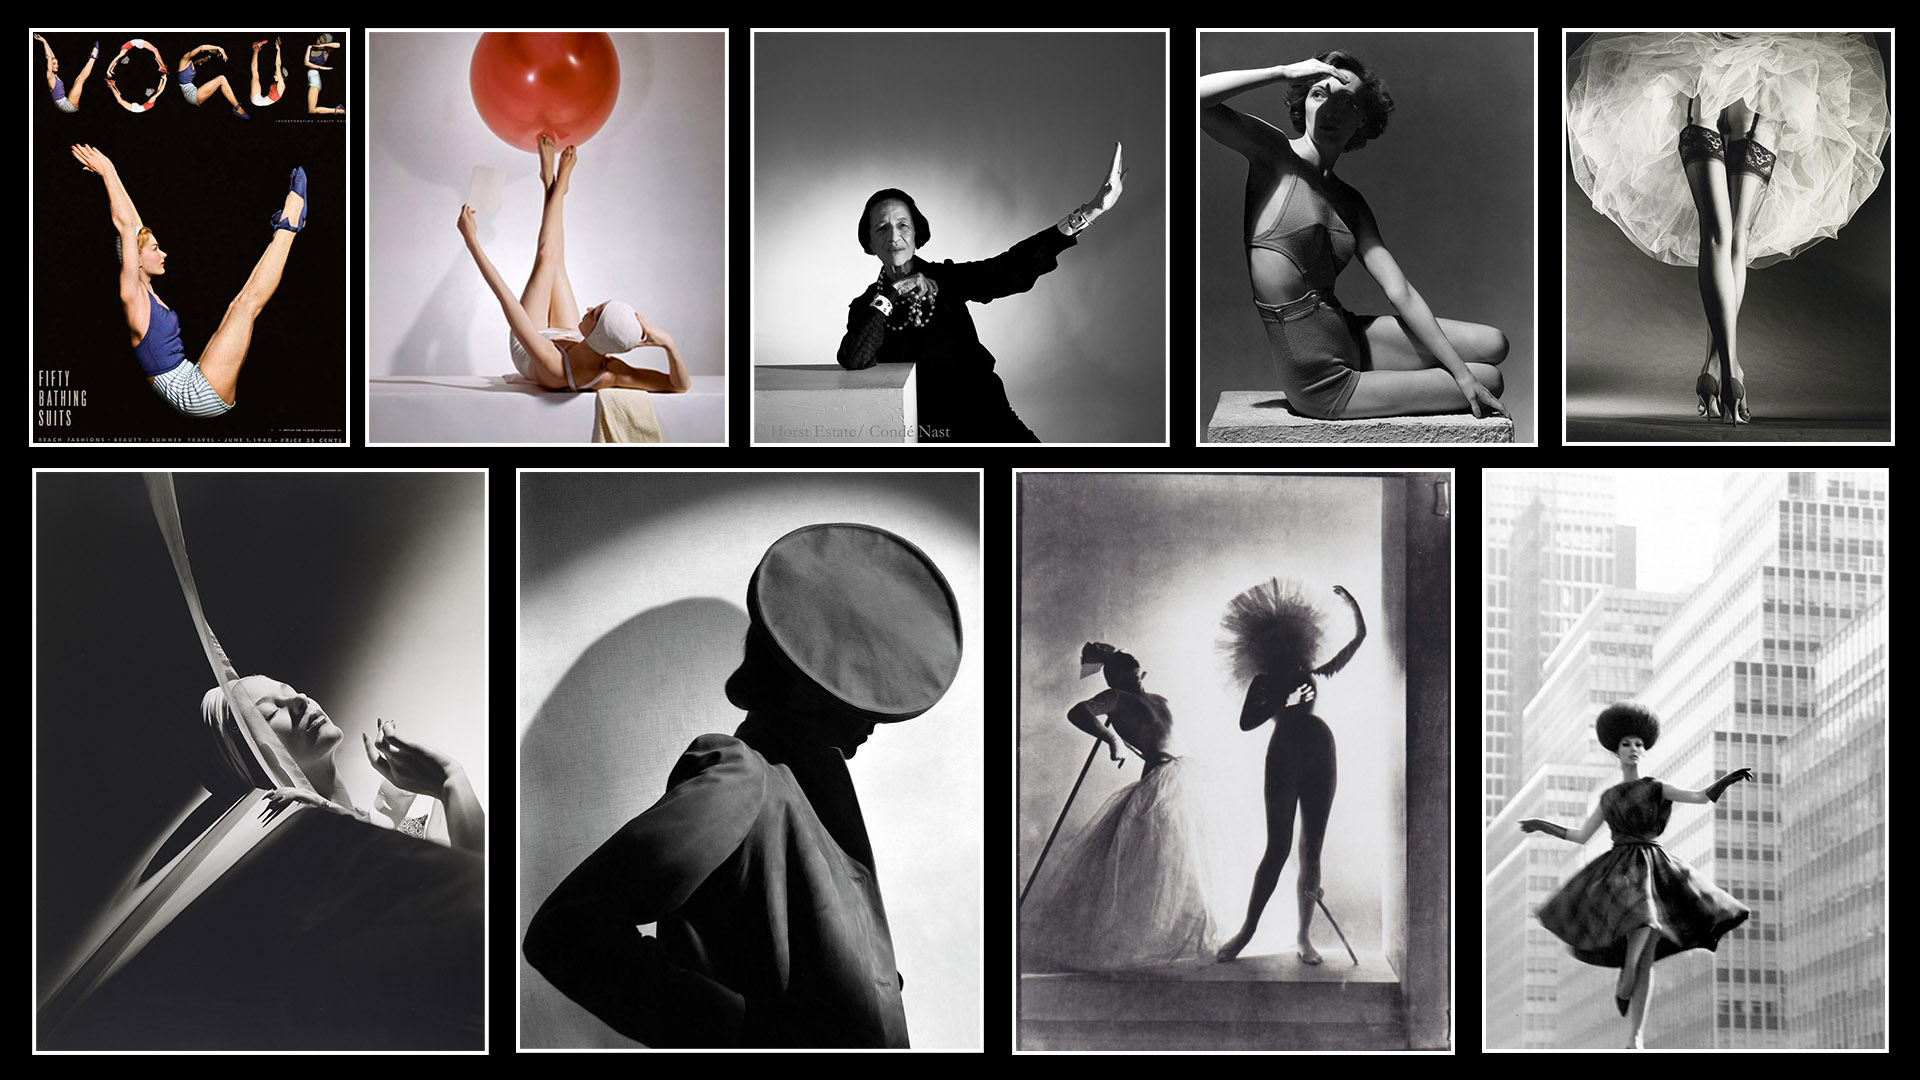 The photography of Horst P. Horst